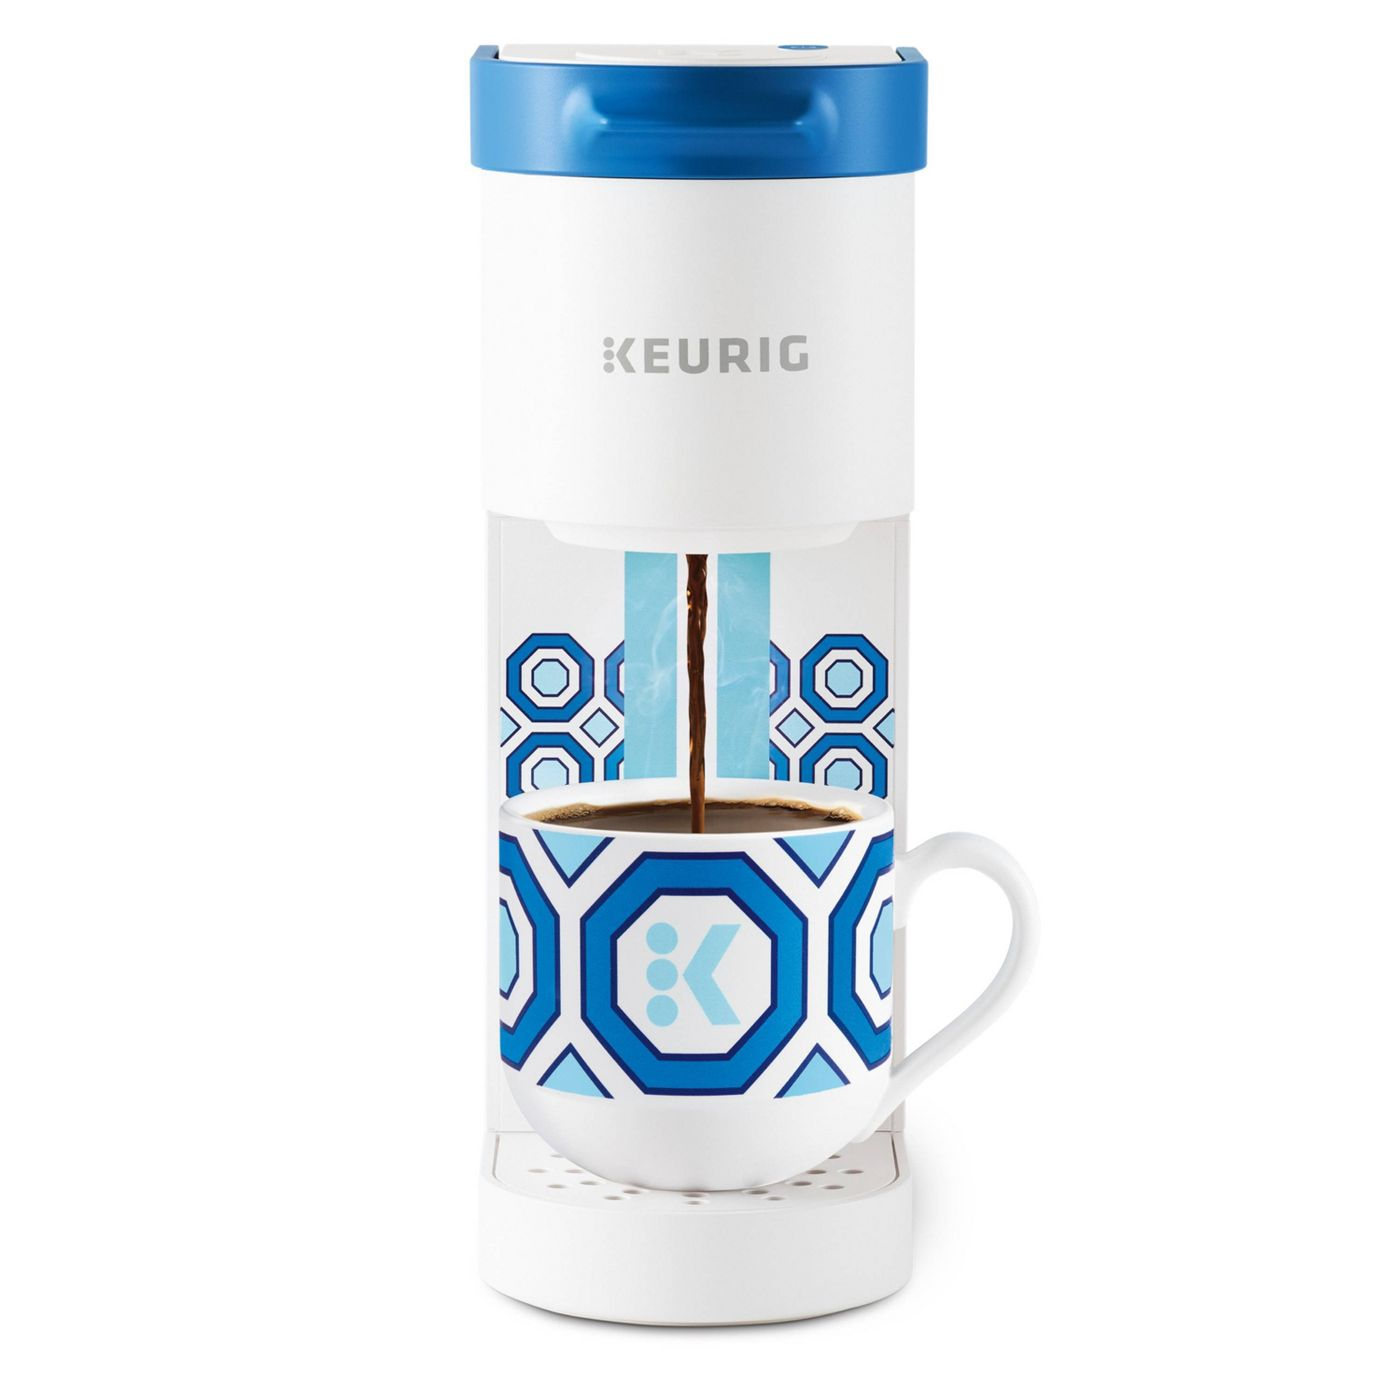 Keurig Jonathan Adler single serve coffee maker